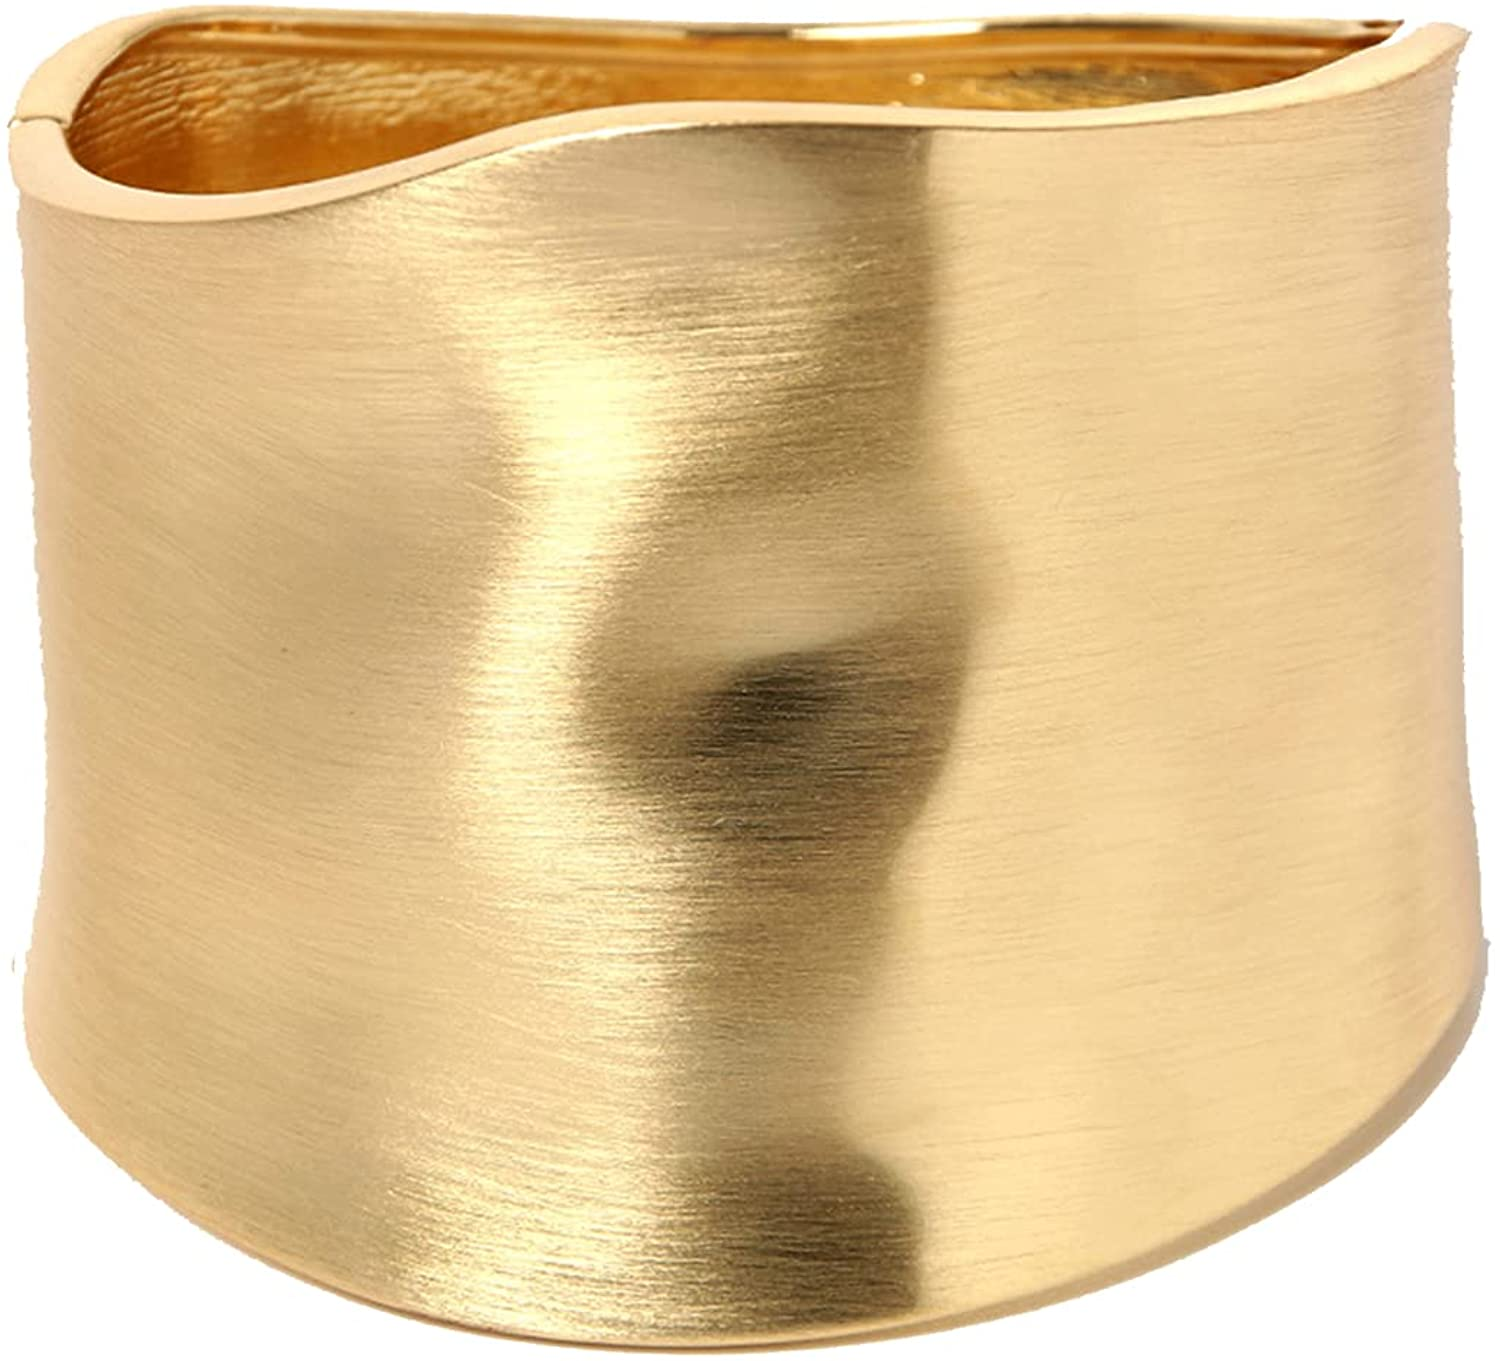 Bangles Bracelets for Women, 18K Gold Plating Chunky Polished-Finish Wrist Cuff Wrap Hinge Twist Bangle Opening Wide-Grooved Wire Statement Fashion Jewelry Bracelet for Women Teen Girl